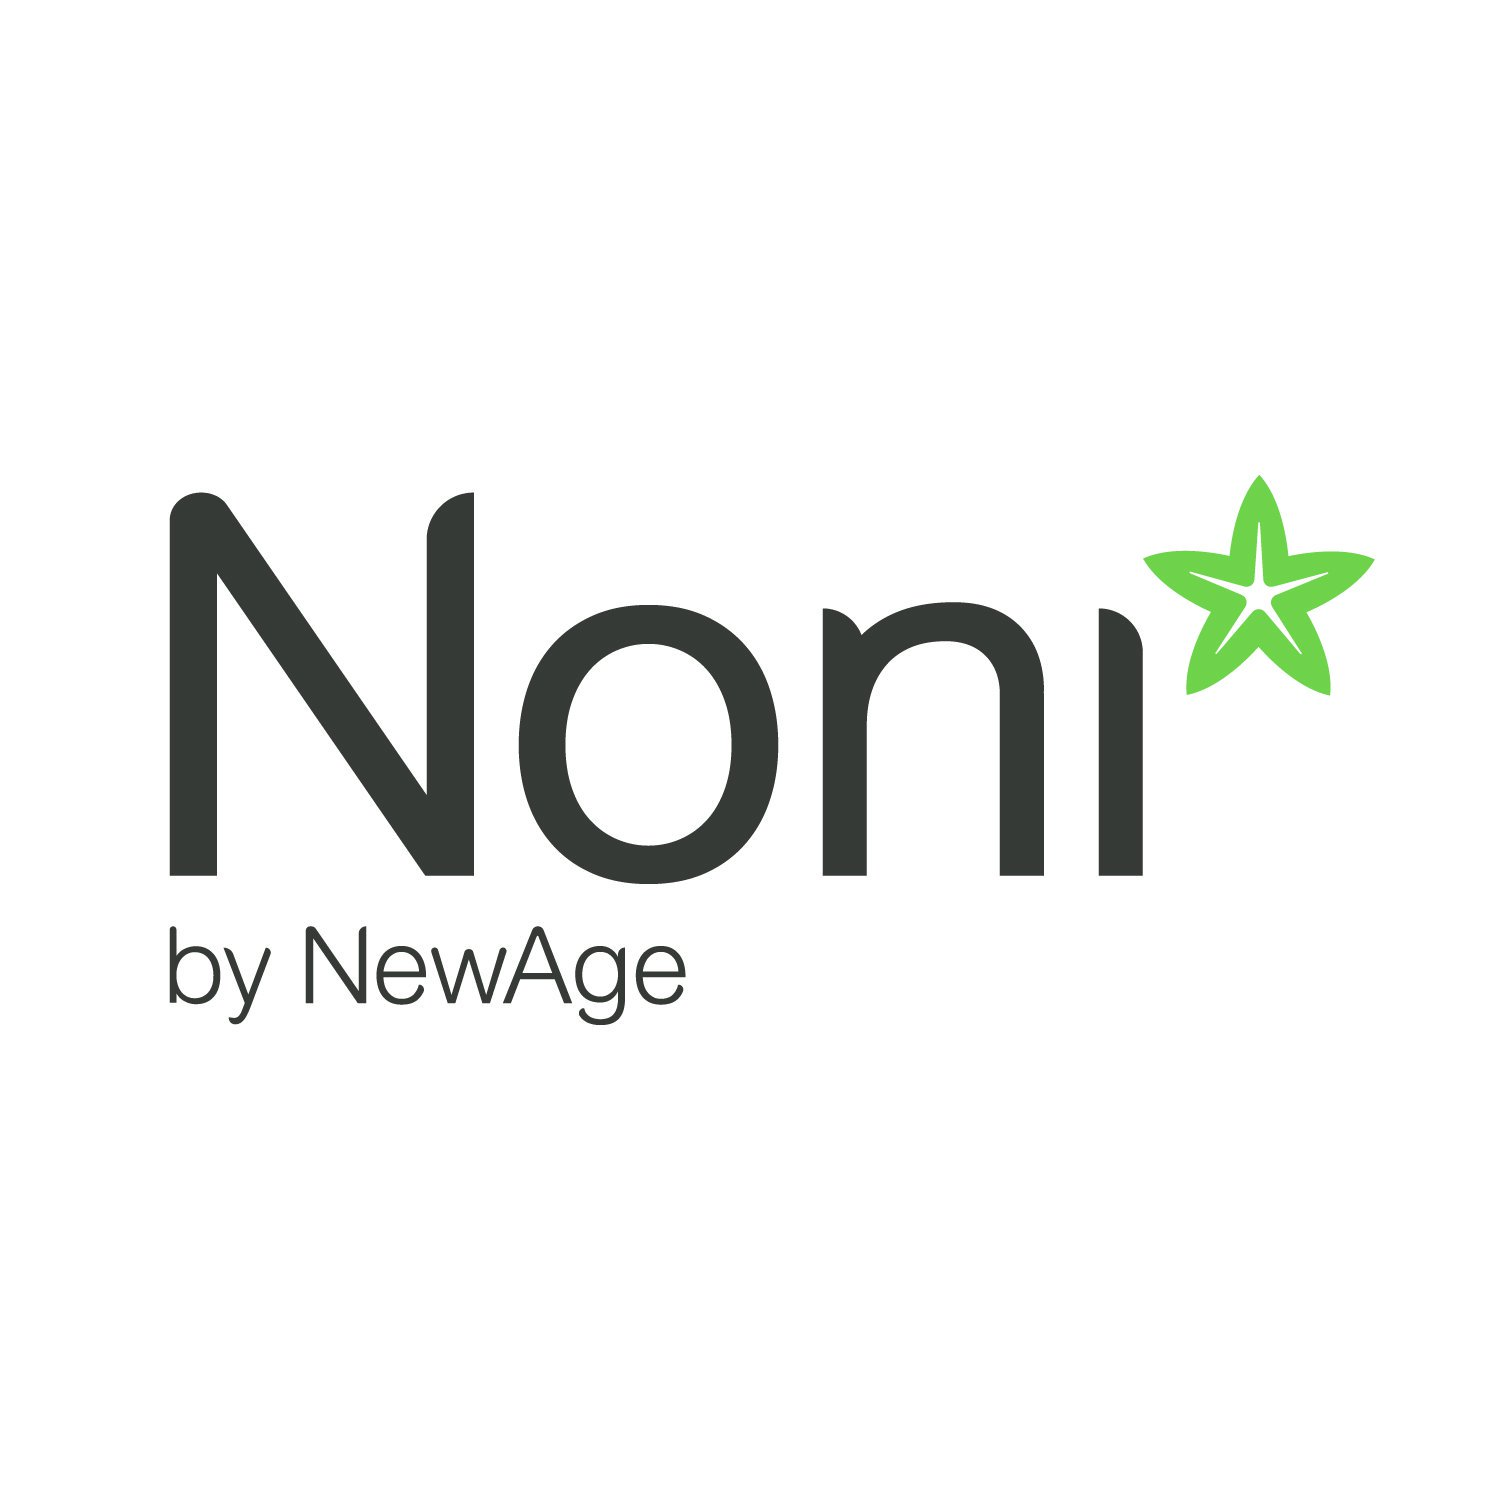 DAVID VANDERVEEN NAMED NEW COO OF NONI BY NEWAGE article image